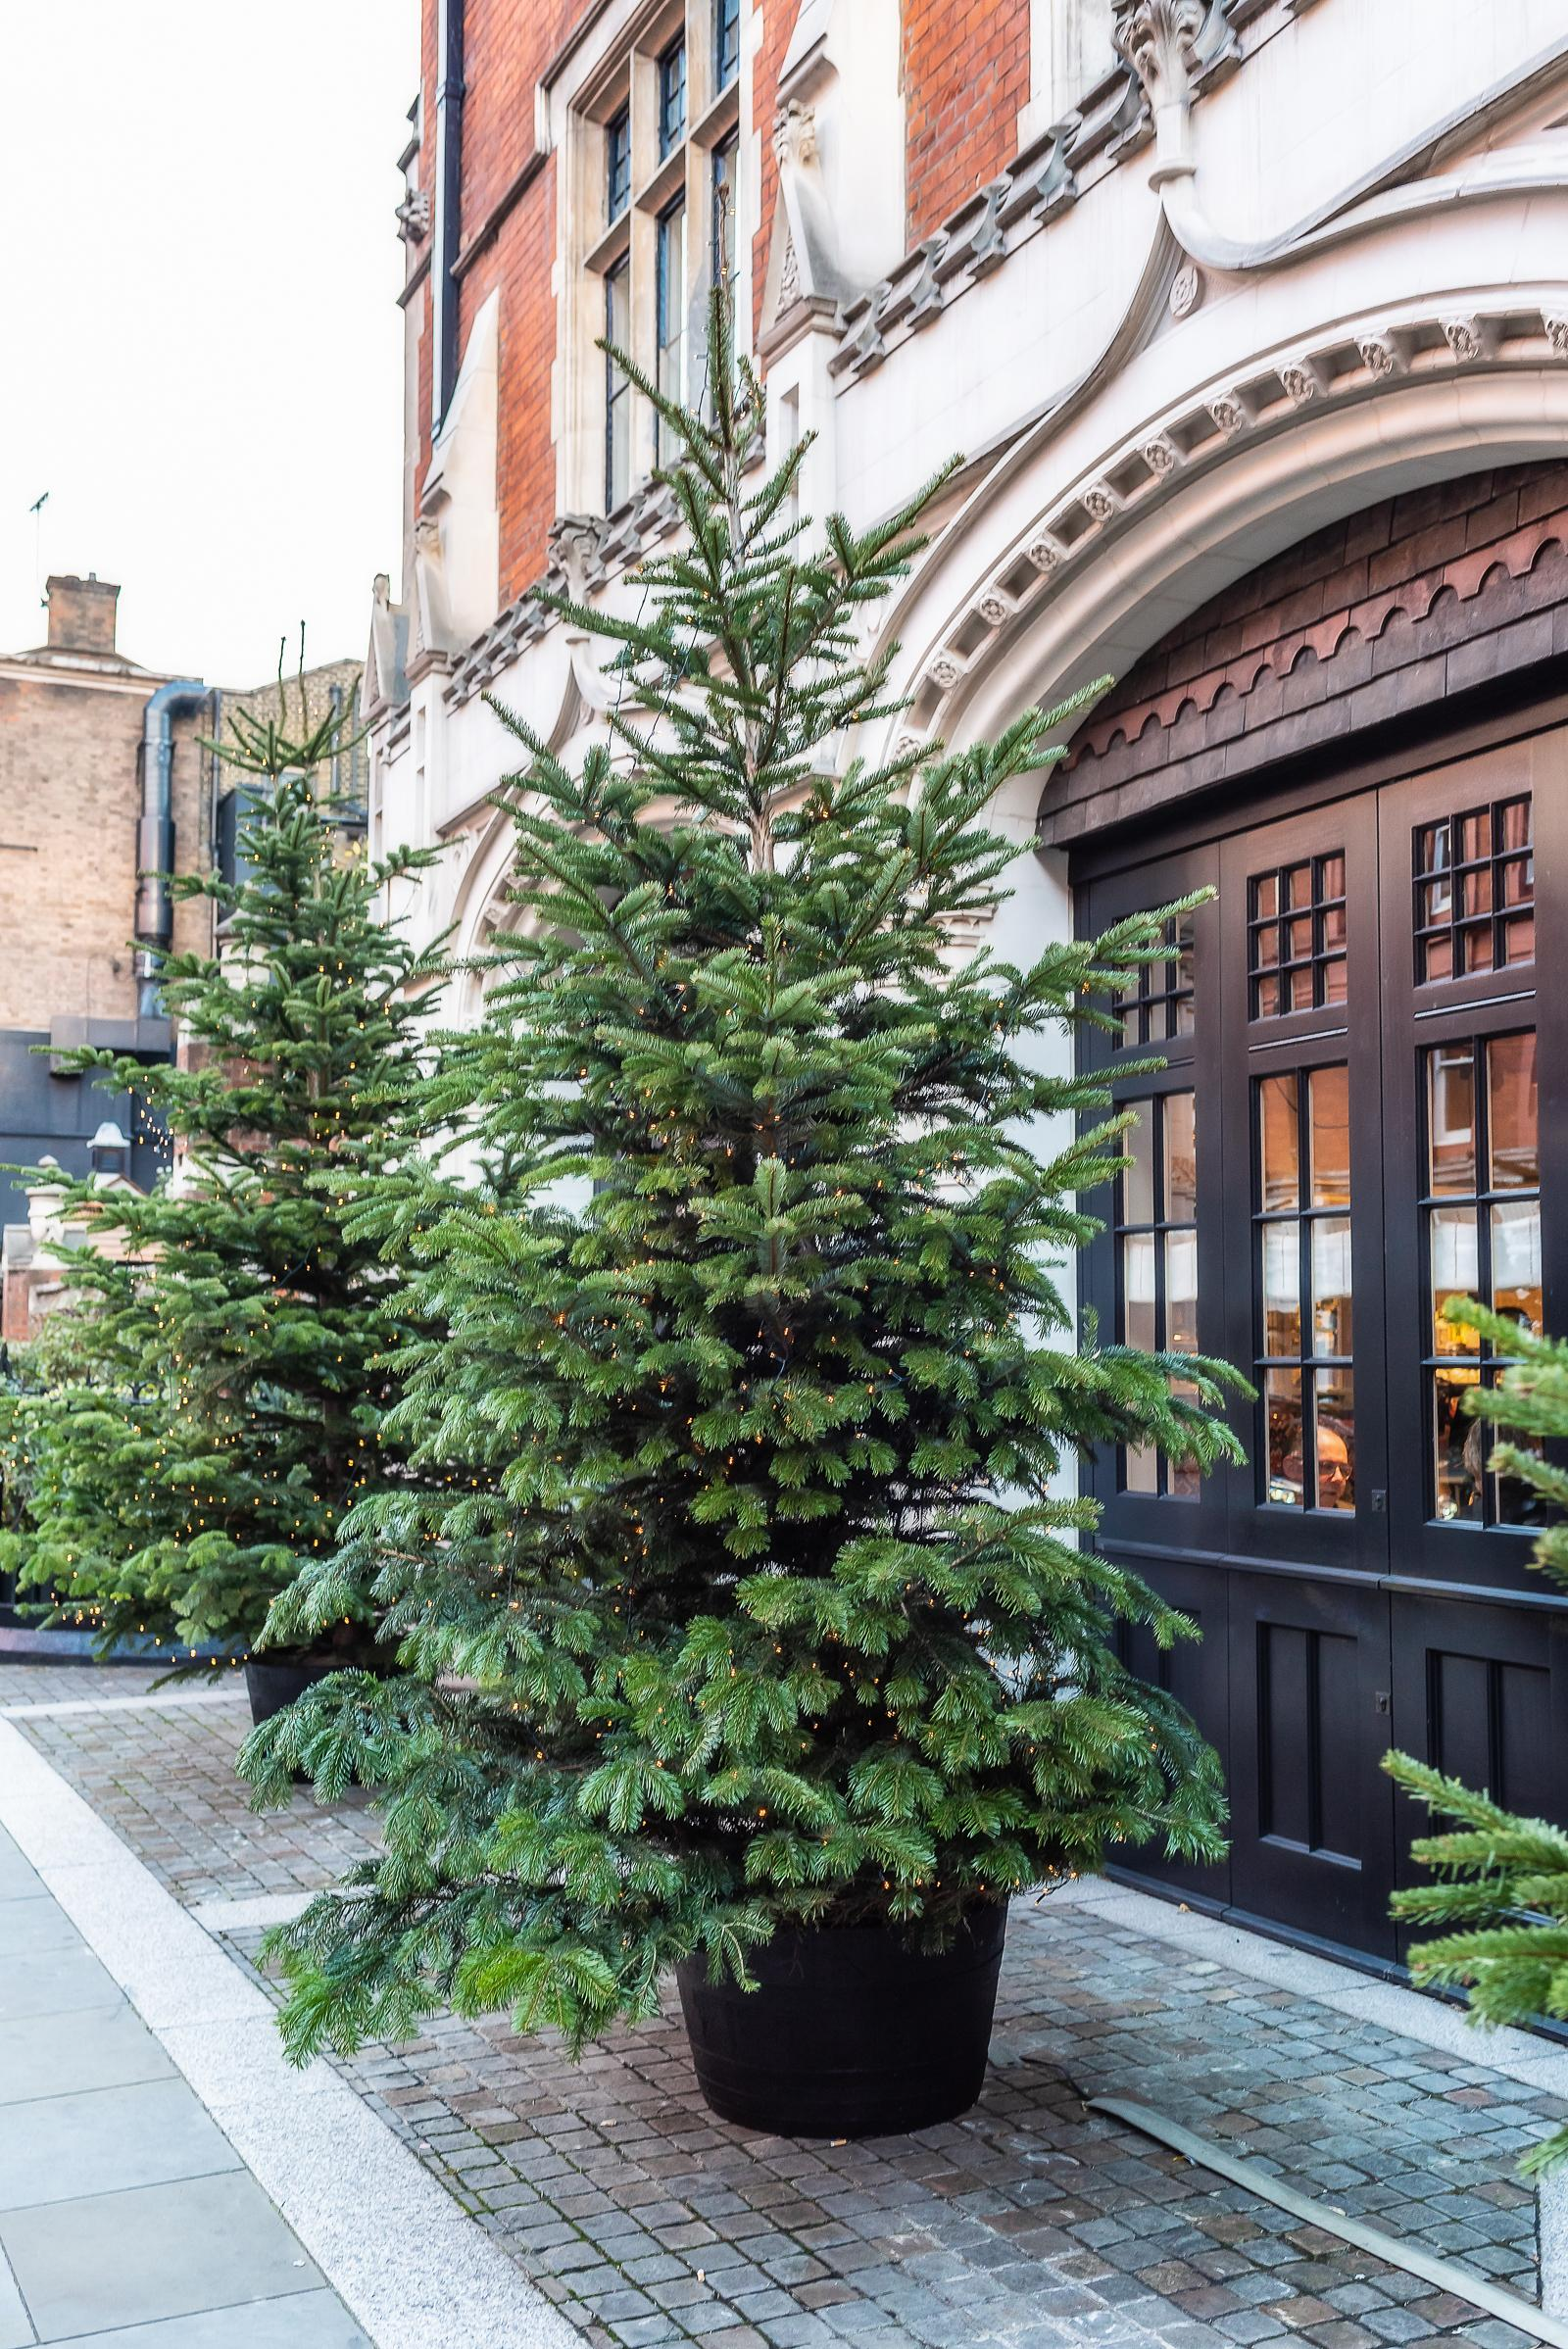 Chiltern Firehouse London December 2018